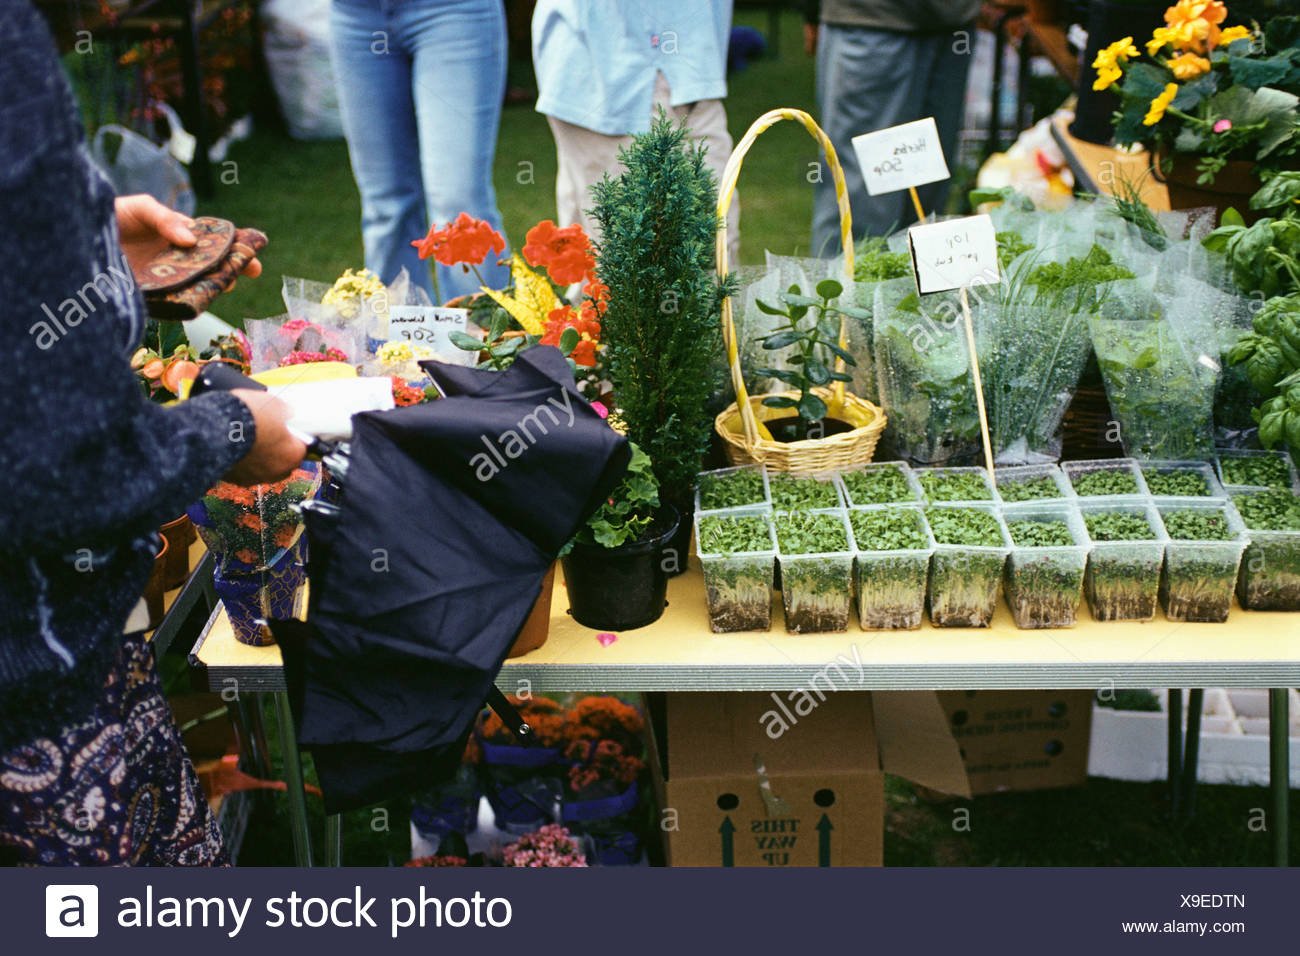 Flower stall at fete - Stock Image